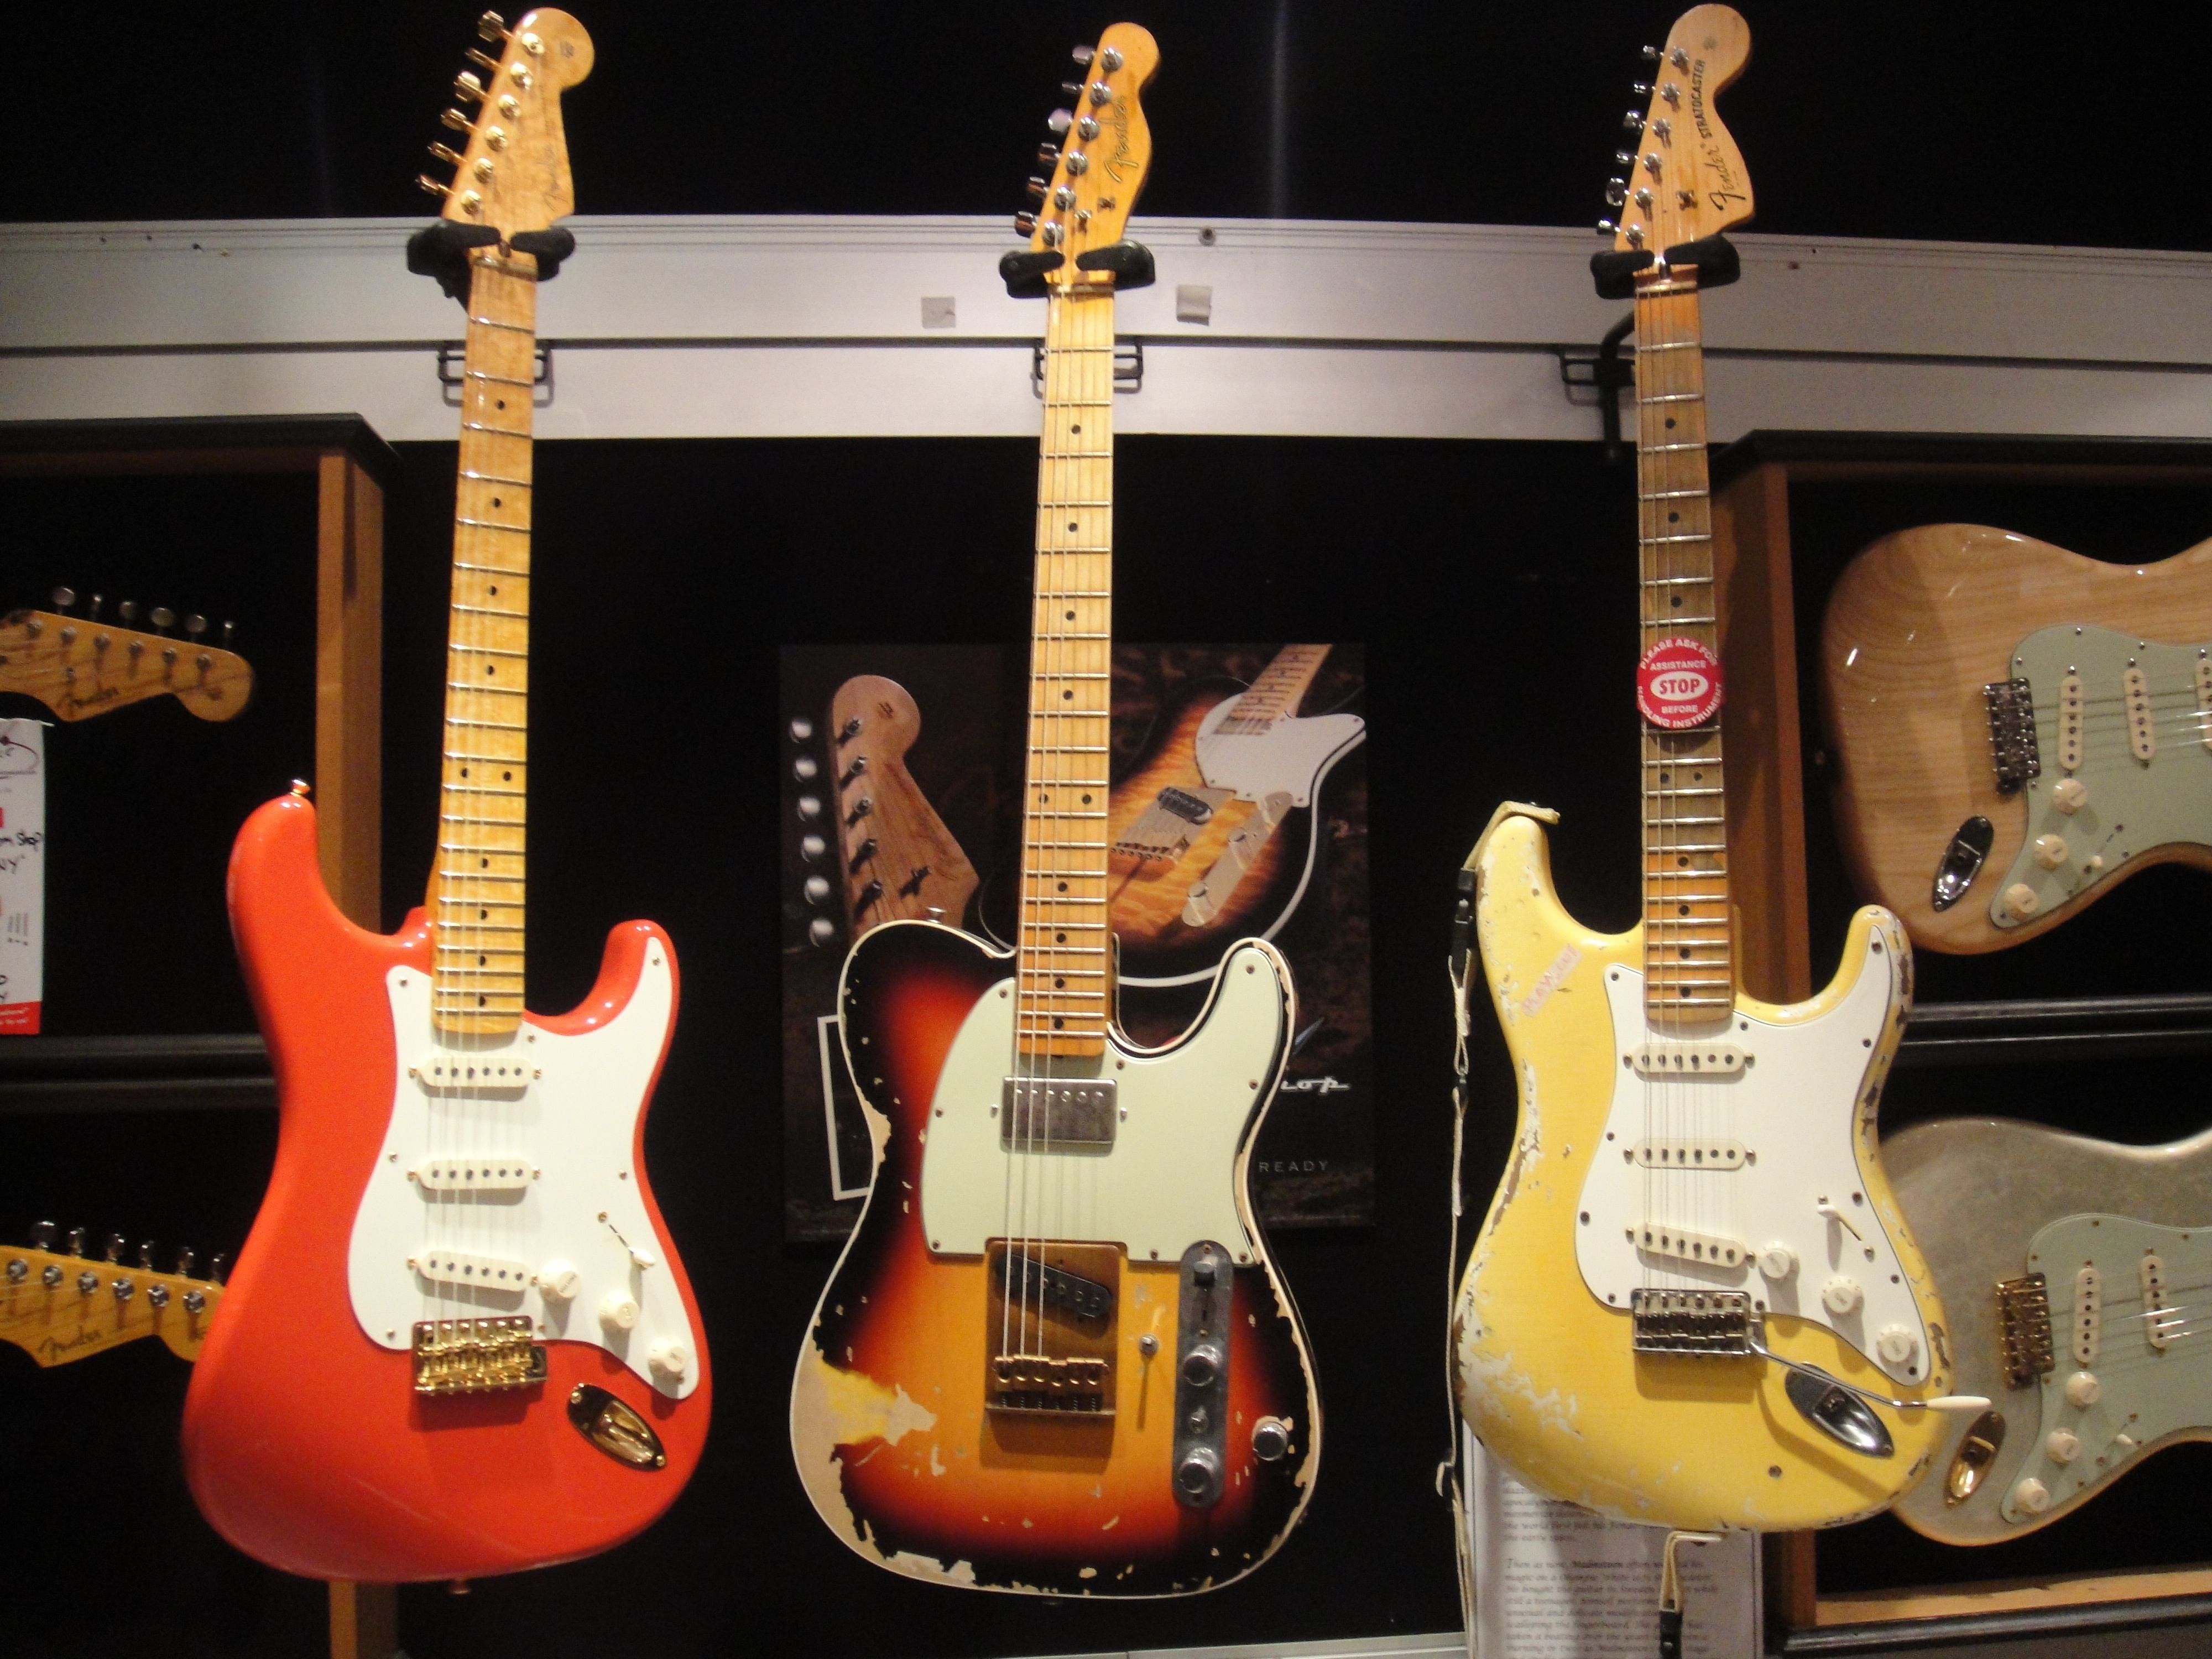 the fender andy summers tele yngwie malmsteen duck and a custom fiesta red 59 strat  [ 4000 x 3000 Pixel ]